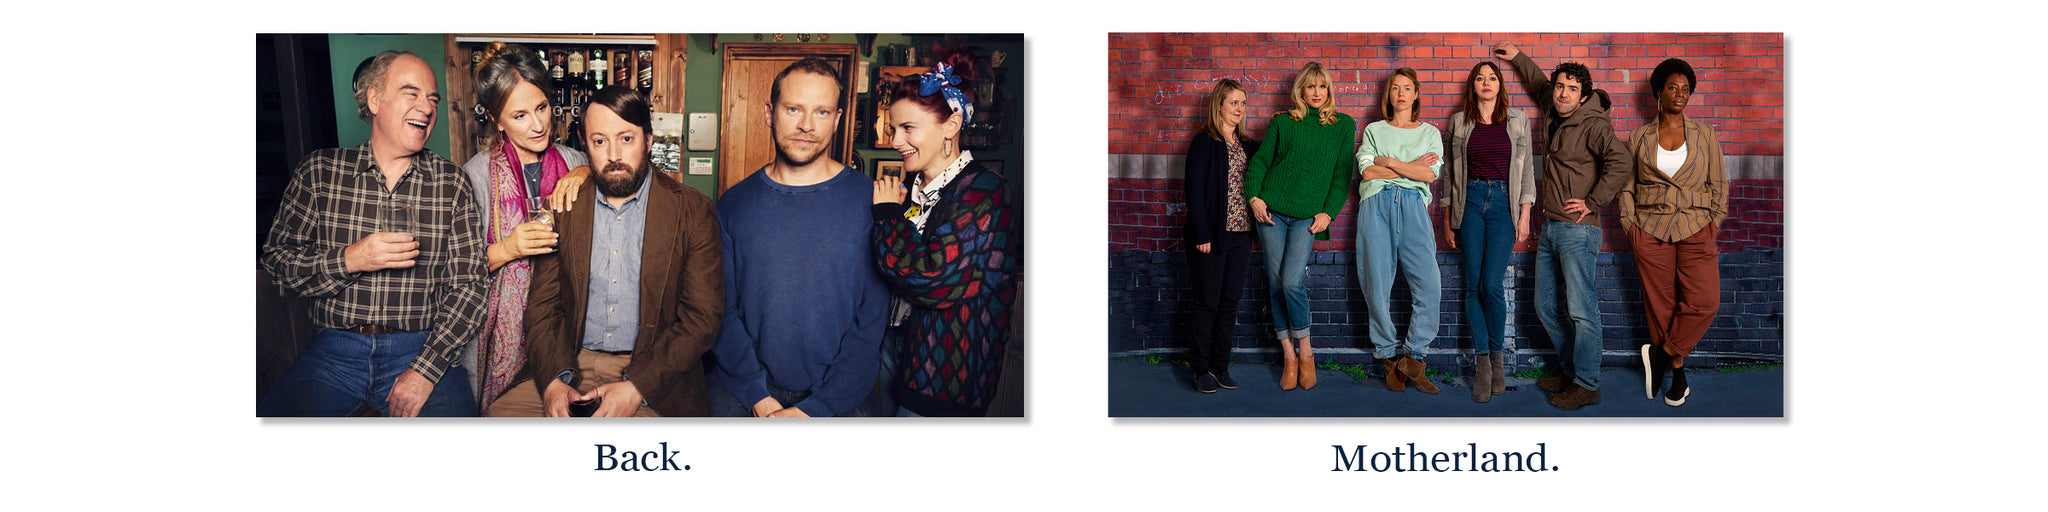 Cast of Tv shows, Back and Motherland.